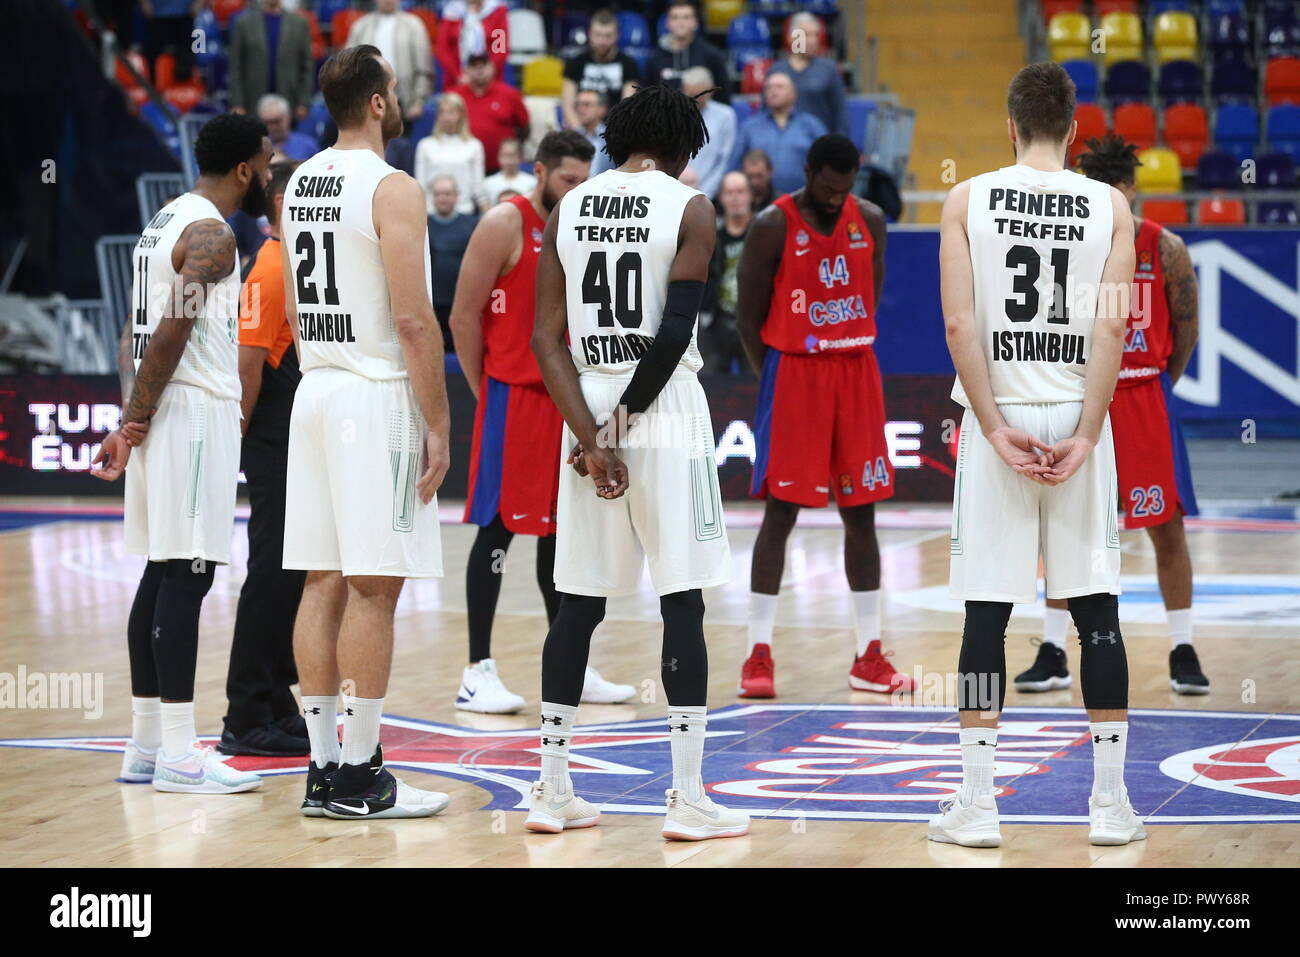 ATTENTION EDITORS! INACCURATE PLACENAME AND DATE IN CAPTIONS FOR TASS IMAGES DATED OCTOBER 2018, TITLED '2018/2019 Euroleague: CSKA Moscow vs Darussafaka Tekfen Istanbul'; CORRECT PLACENAME IS MOSCOW, CORRECT DATE IS 18 OCTOBER 2018. EXAMPLE OF CORRECT CAPTION FOLLOWS: 'MOSCOW, RUSSIA - OCTOBER 18, 2018: Darussafaka Tekfen Istanbul's Stanton Kidd, Oguz Savas, Jeremy Evans, Zanis Peiners (L-R front), and CSKA Moscow players observe a minute of silence in memory of the victims of the October 2018 Kerch school shooting, before the start of a 2018/2019 Euroleague Regular Season Round 3 basketball - Stock Image